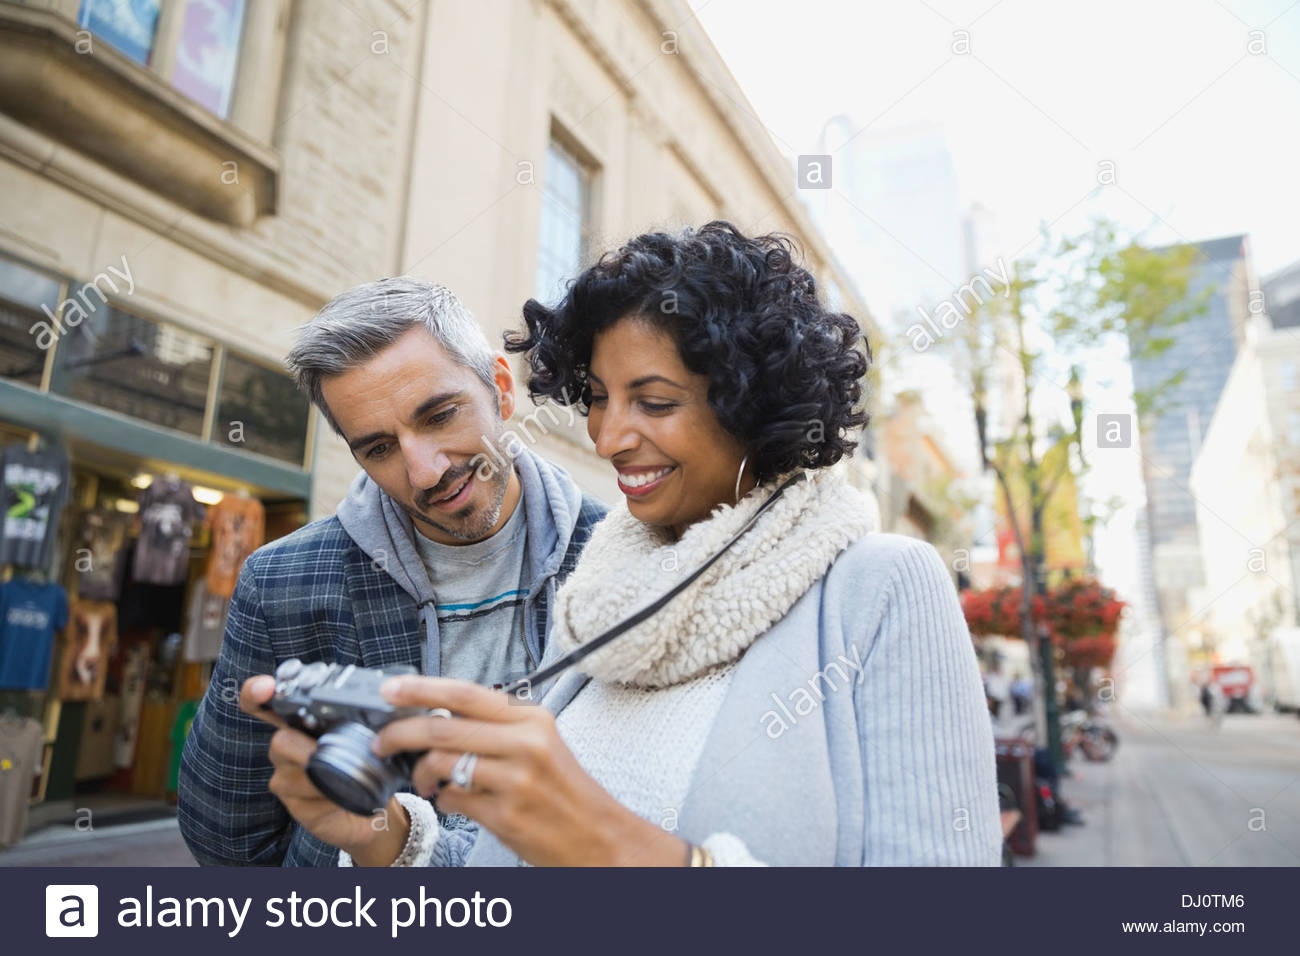 Couple looking at digital camera on city street - Stock Image